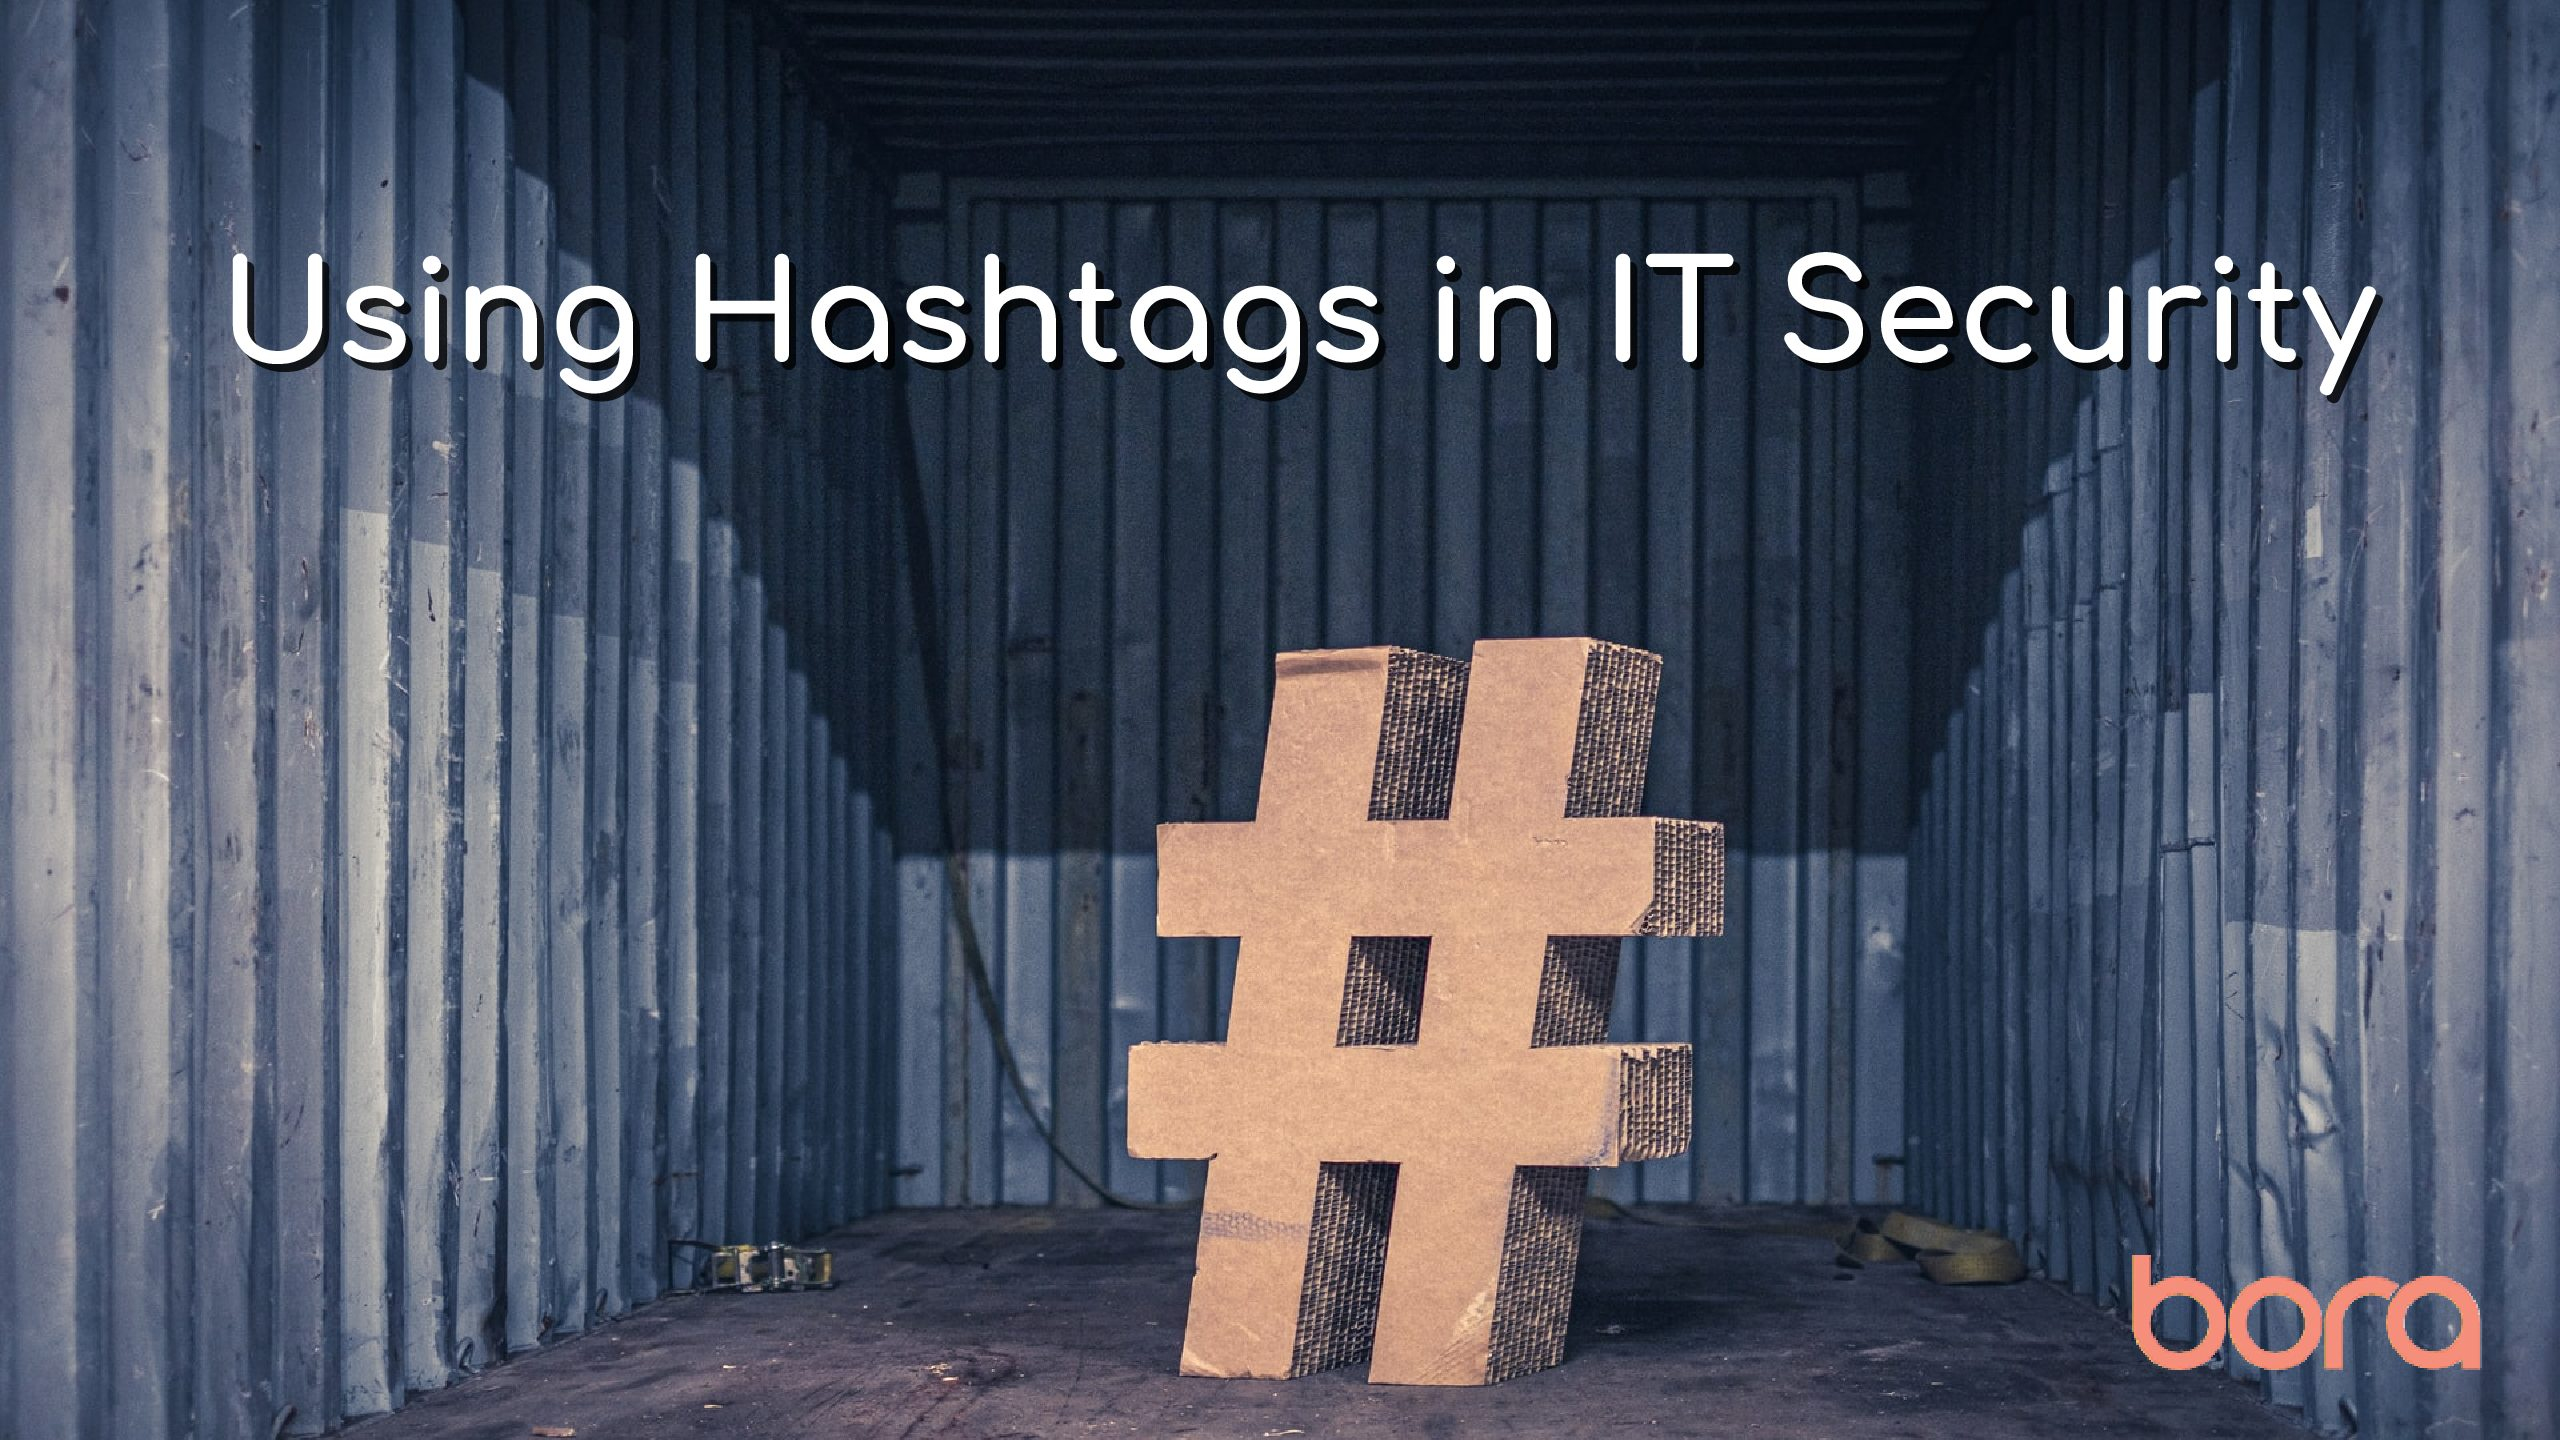 Using Hashtags in IT Security